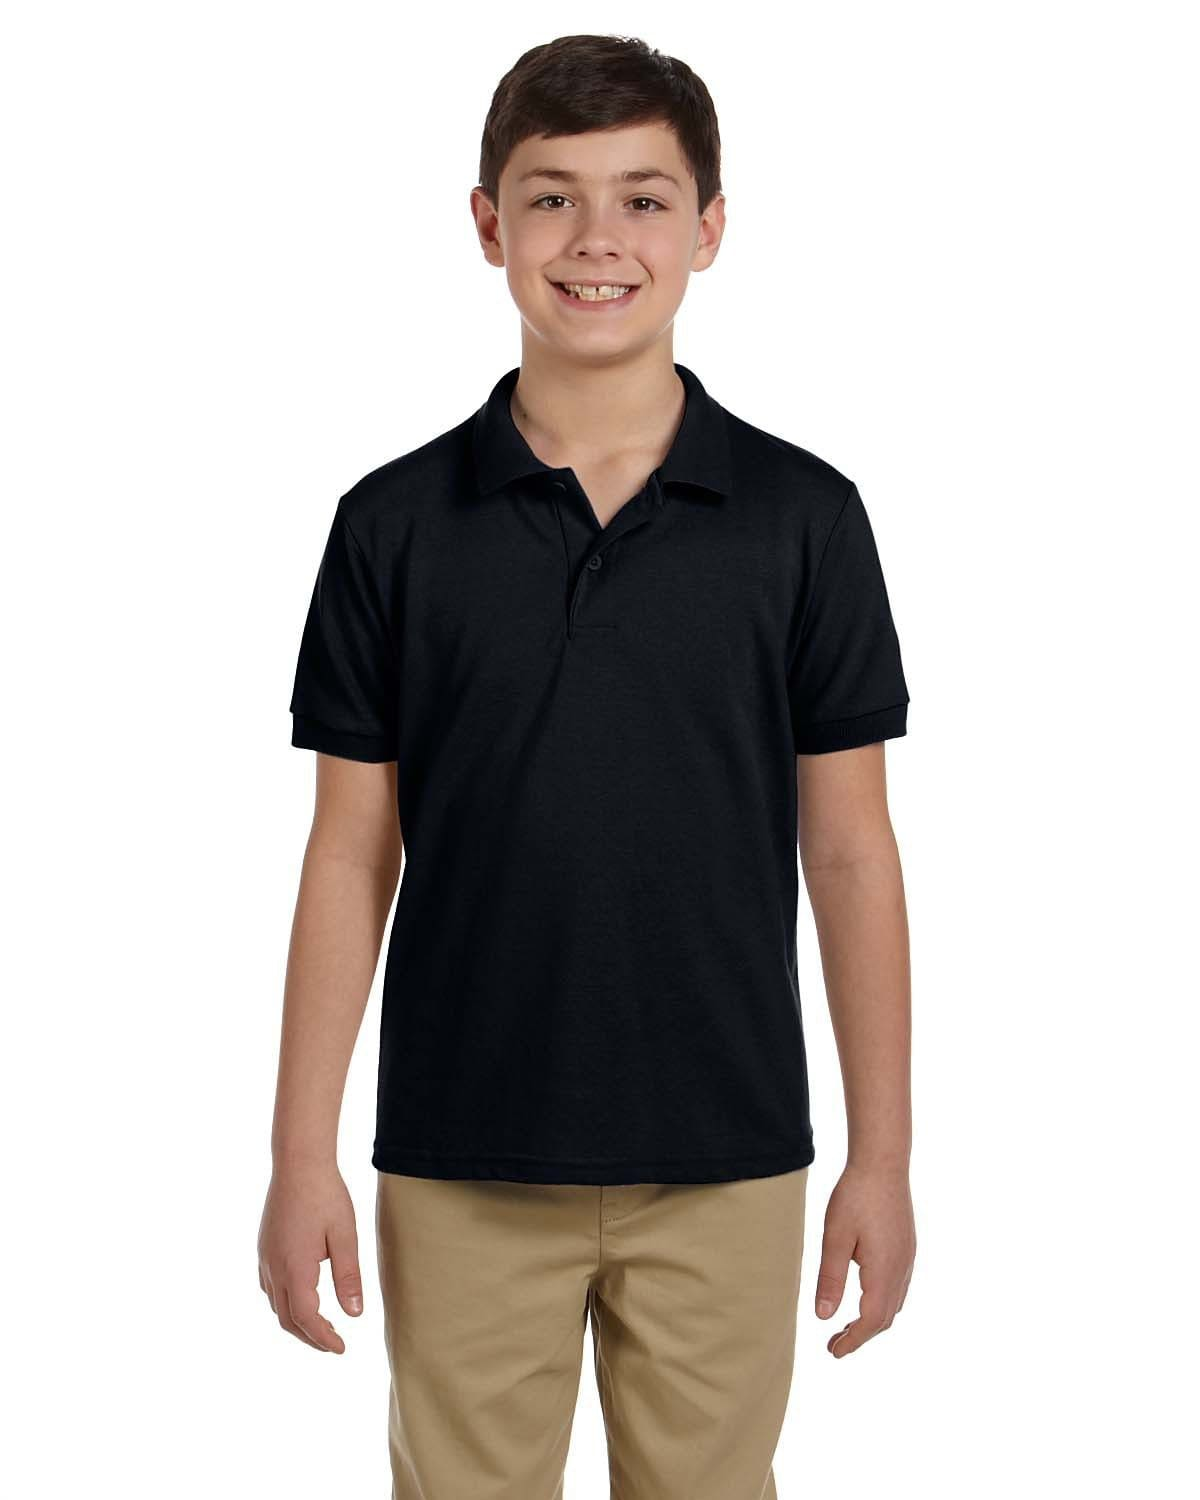 g948b-youth-6-8-oz-piqu-polo-XSmall-BLACK-Oasispromos